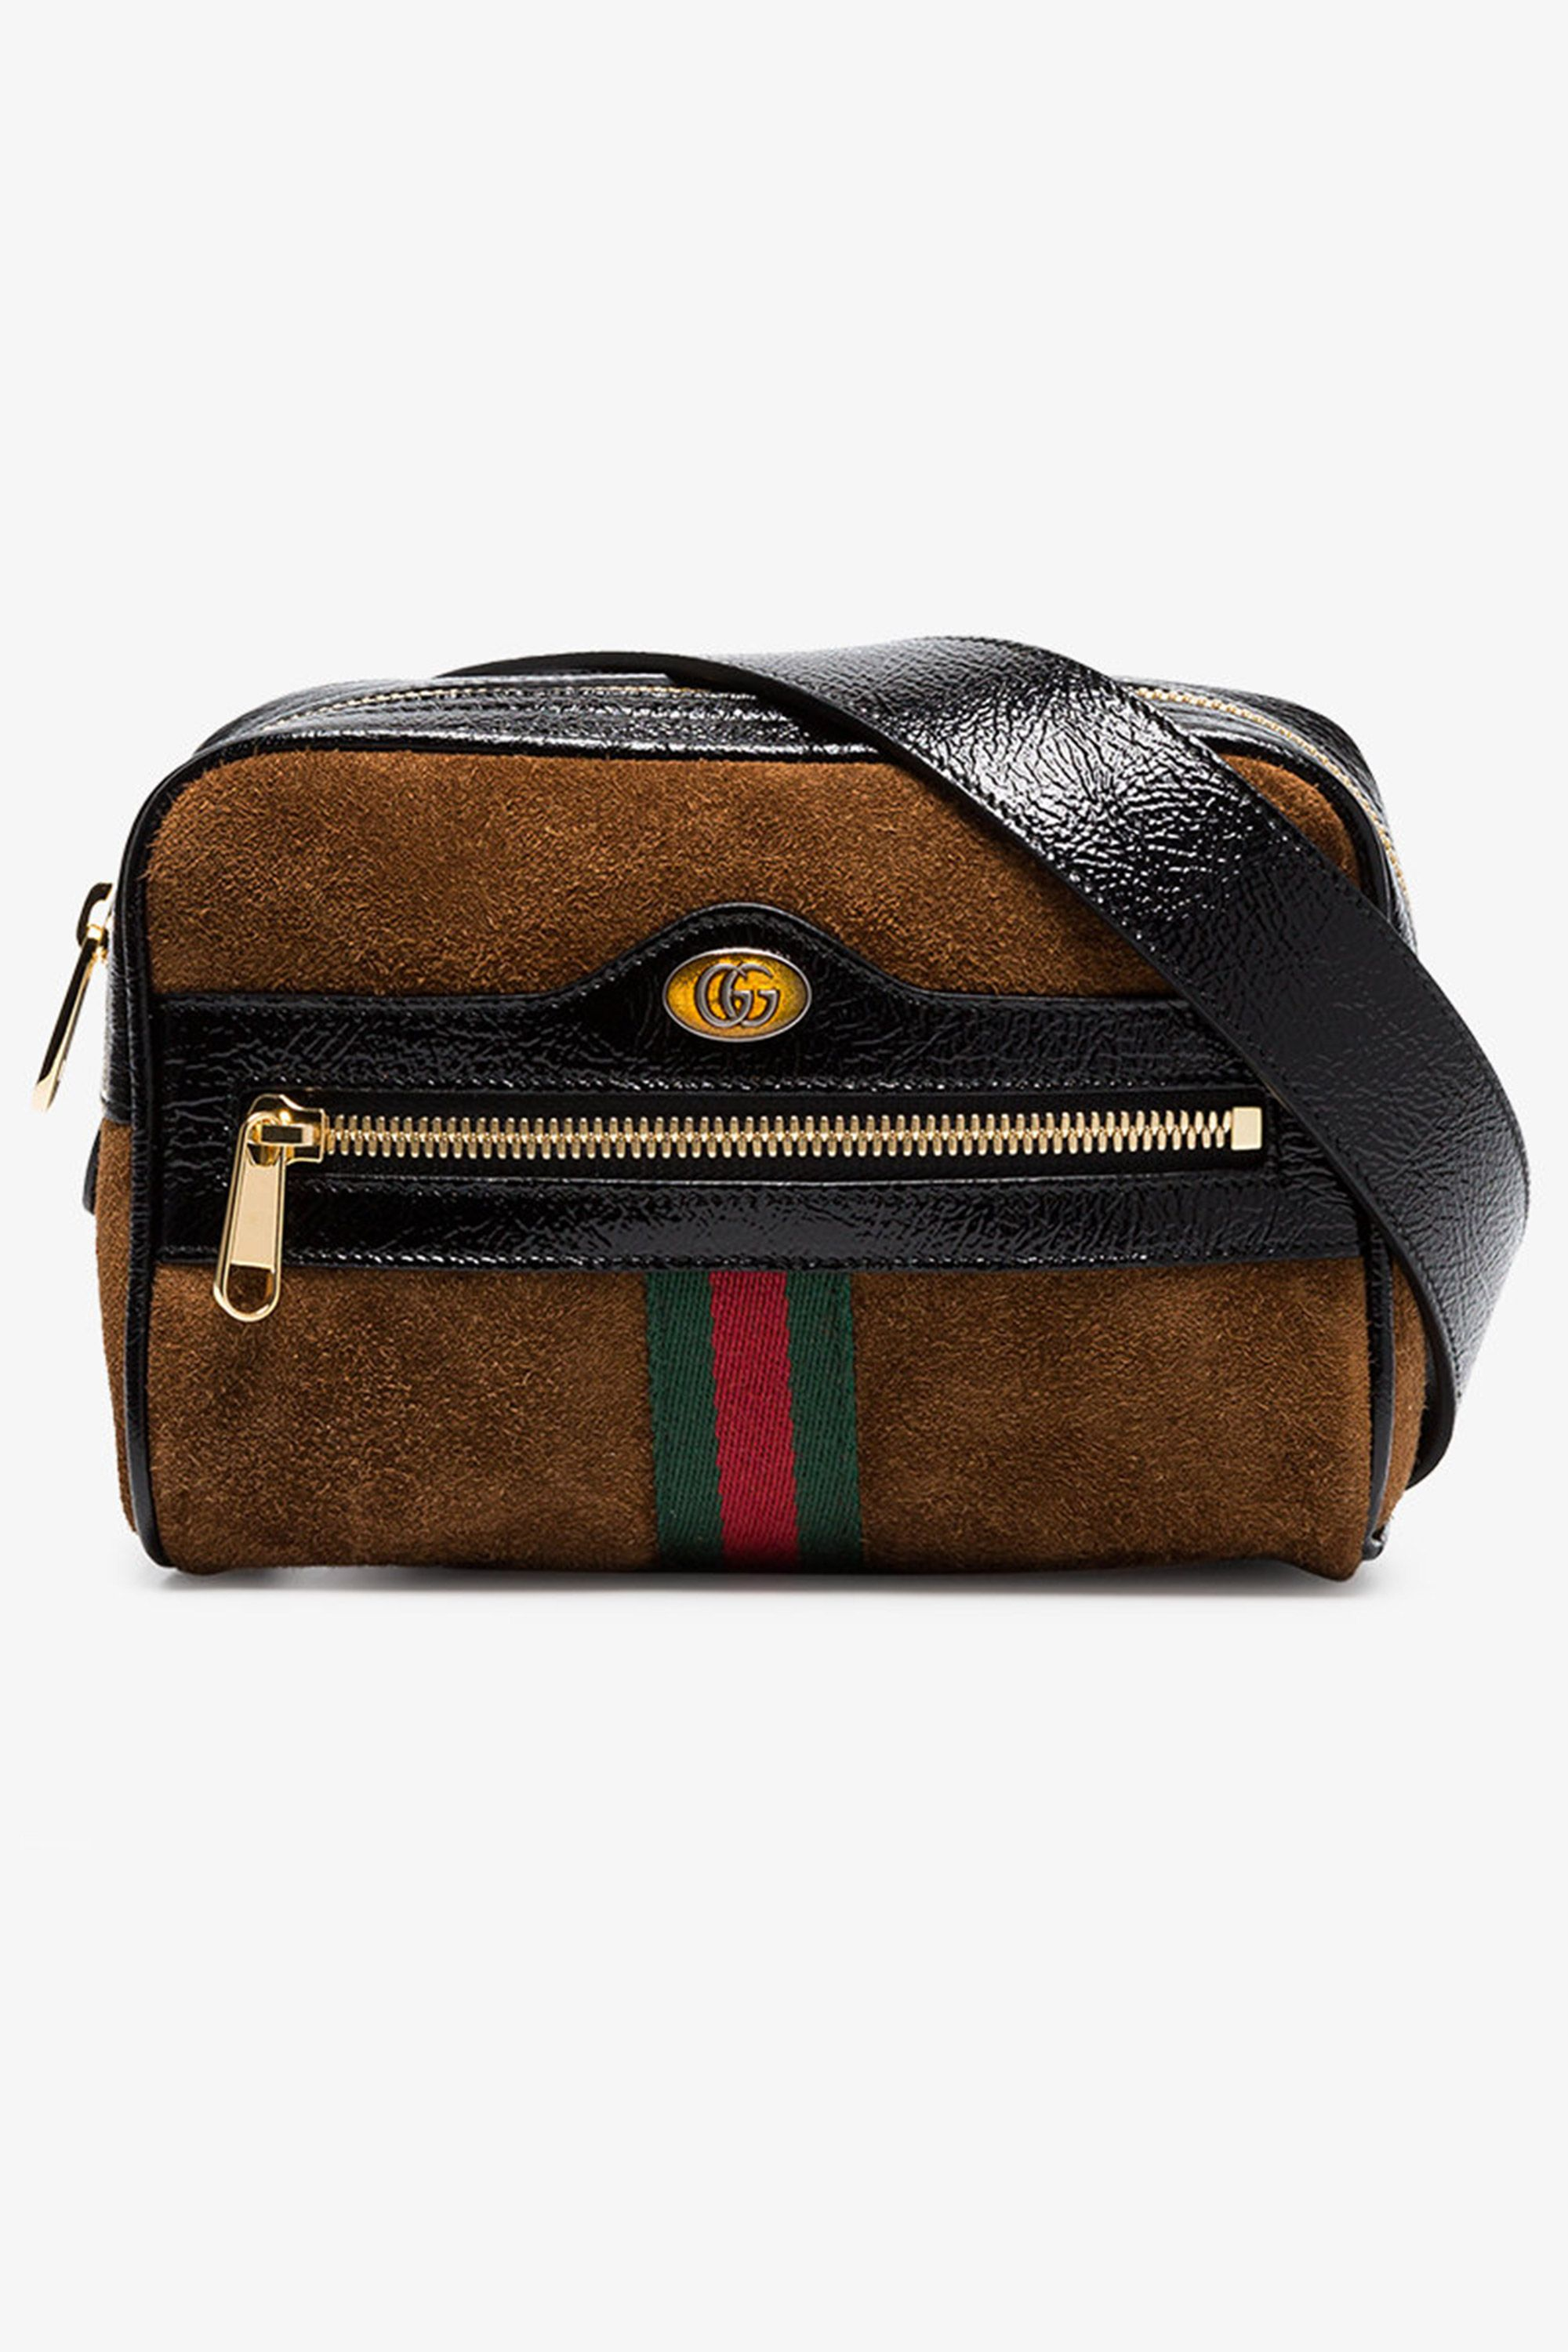 216b7859926 10 best belt bags to buy now - How to wear a belt bag